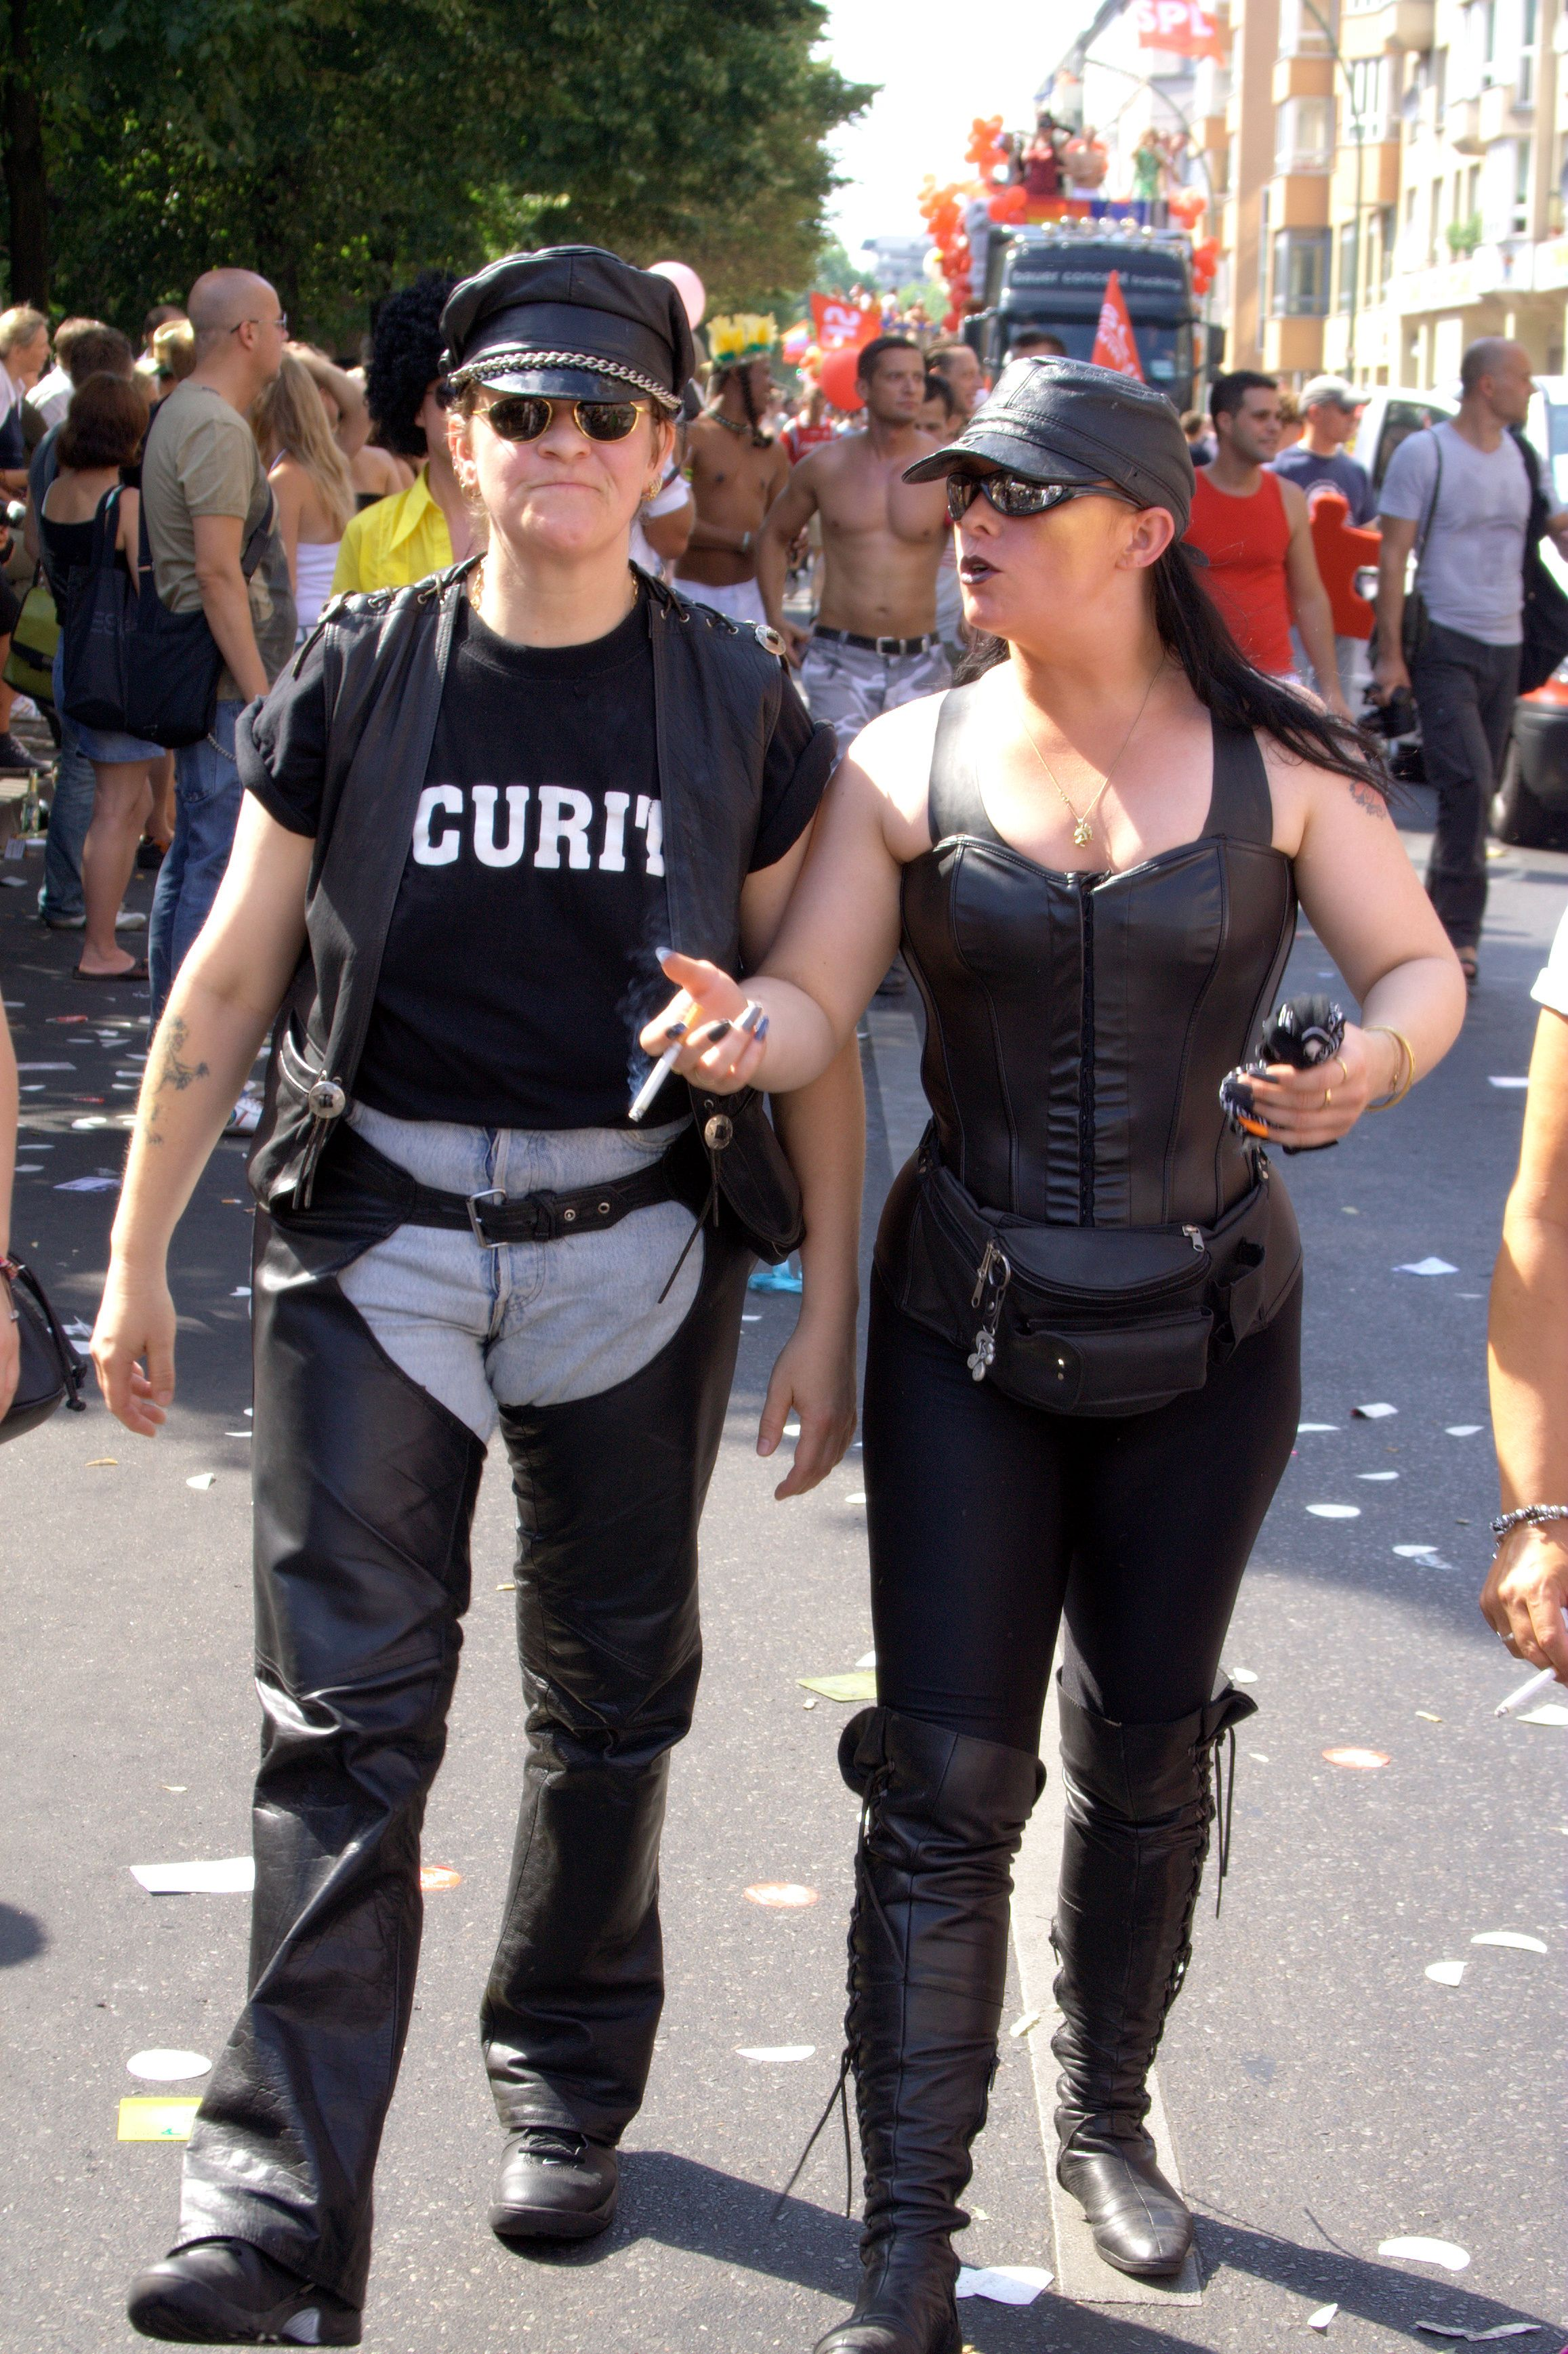 Femme butch dating - Dating site - click and find mutual relations looking